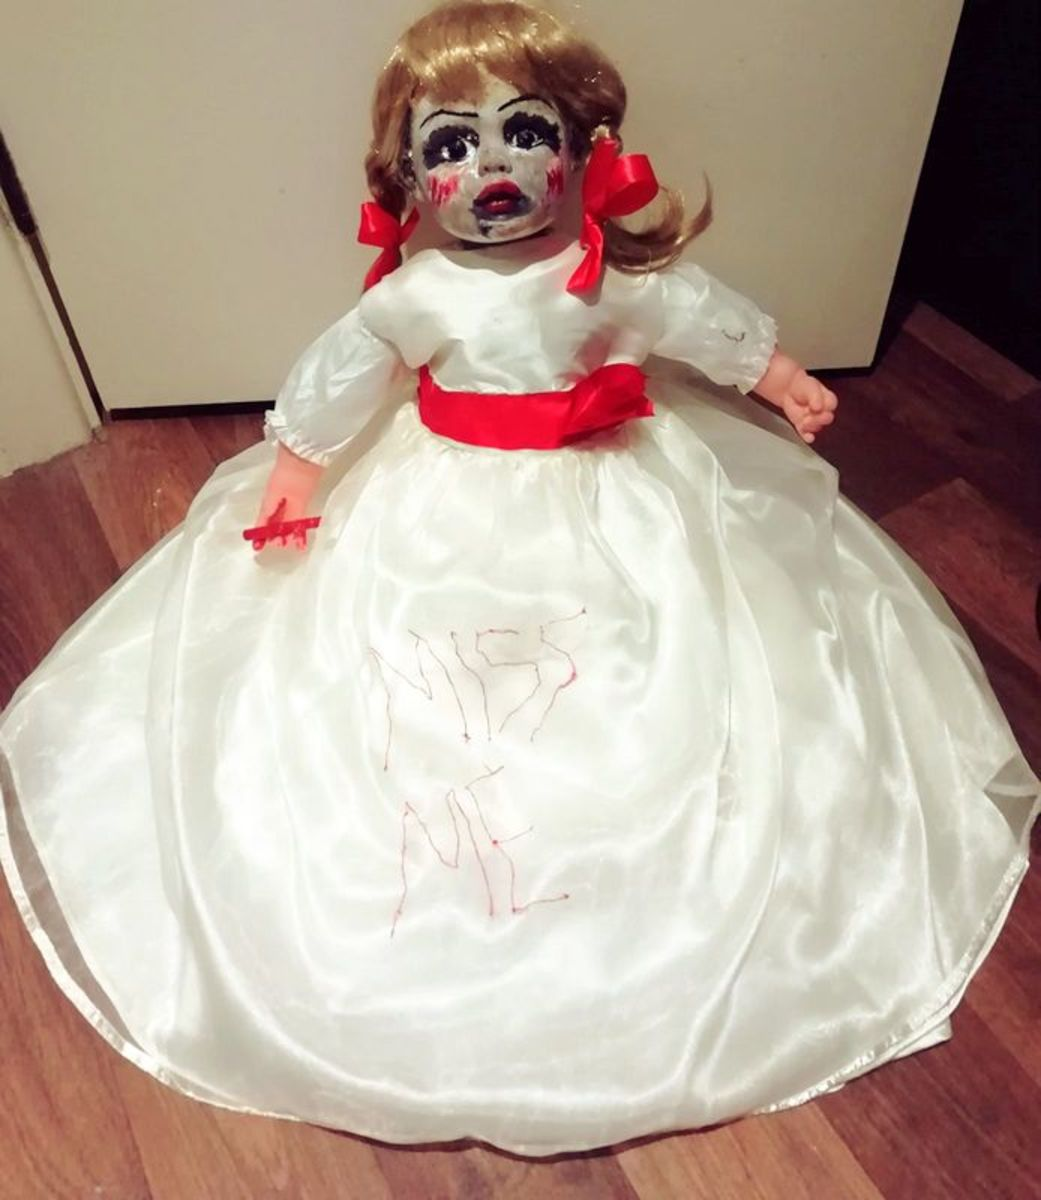 How to Make an Annabelle Doll Decoration for Halloween